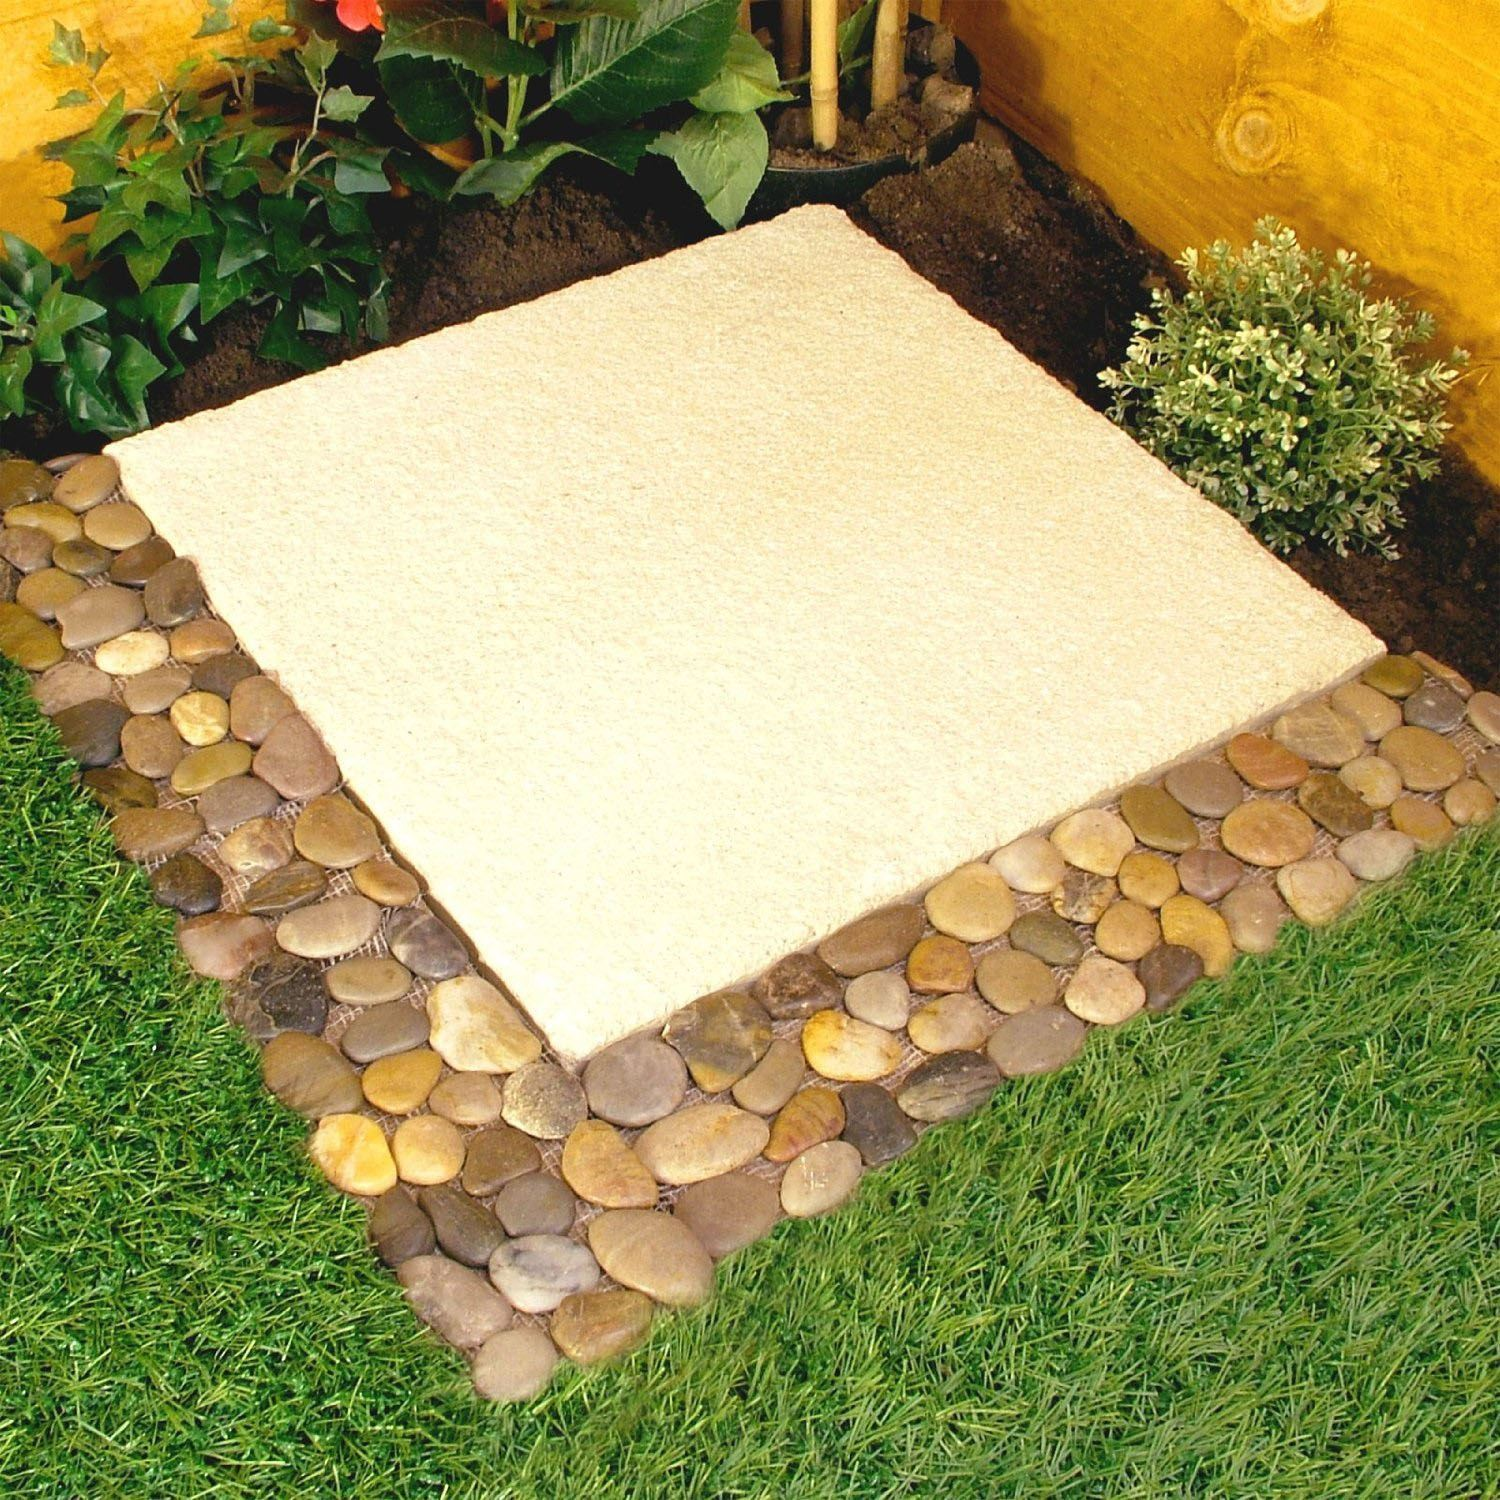 Lawn edging stone pebble border plant garden bathroom wall for Decorative stone garden border